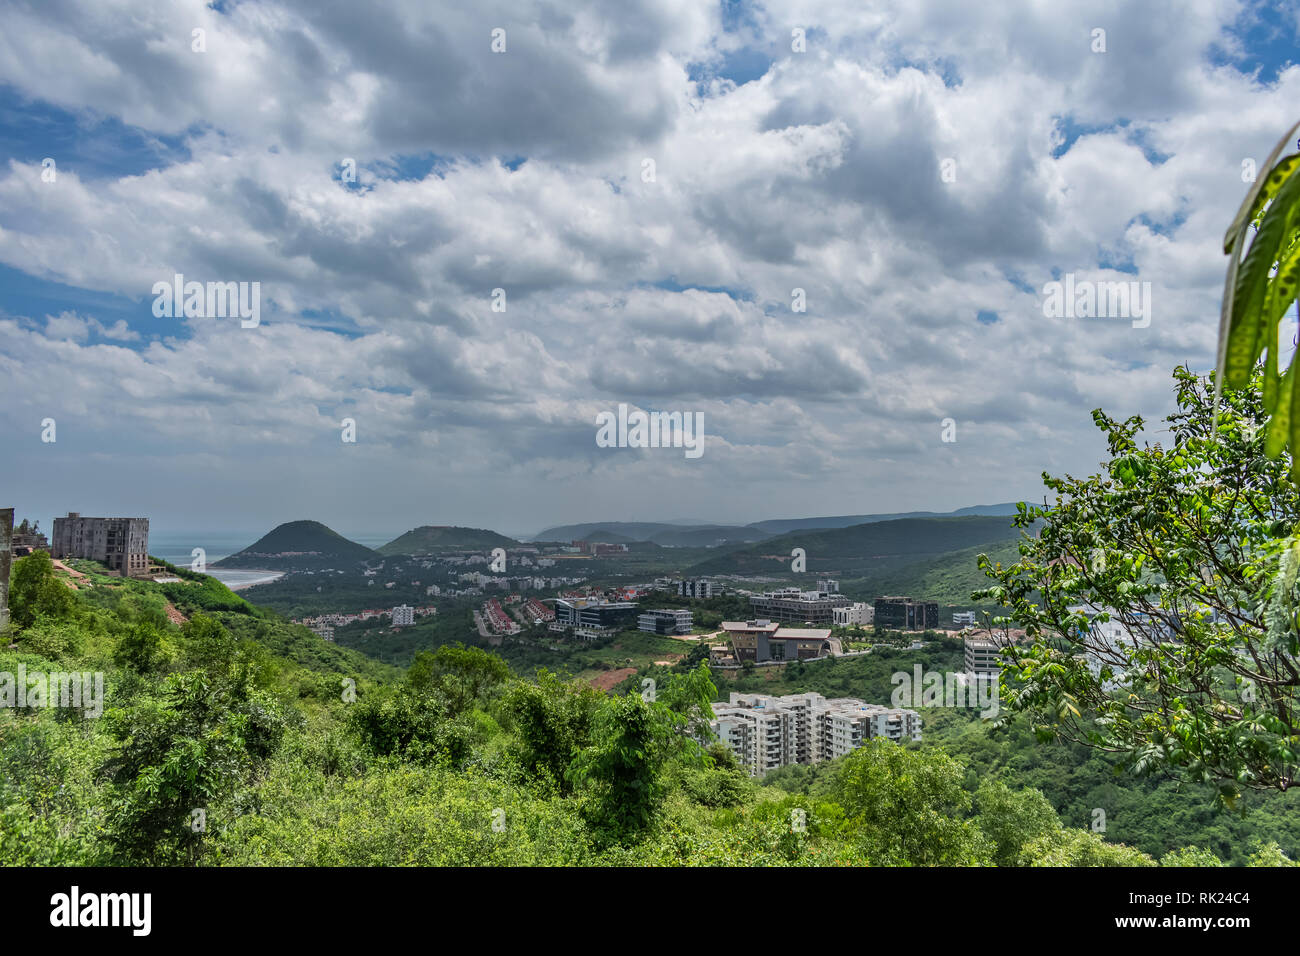 Awesome view of city building from top of a mountain with white sky cloud. Stock Photo